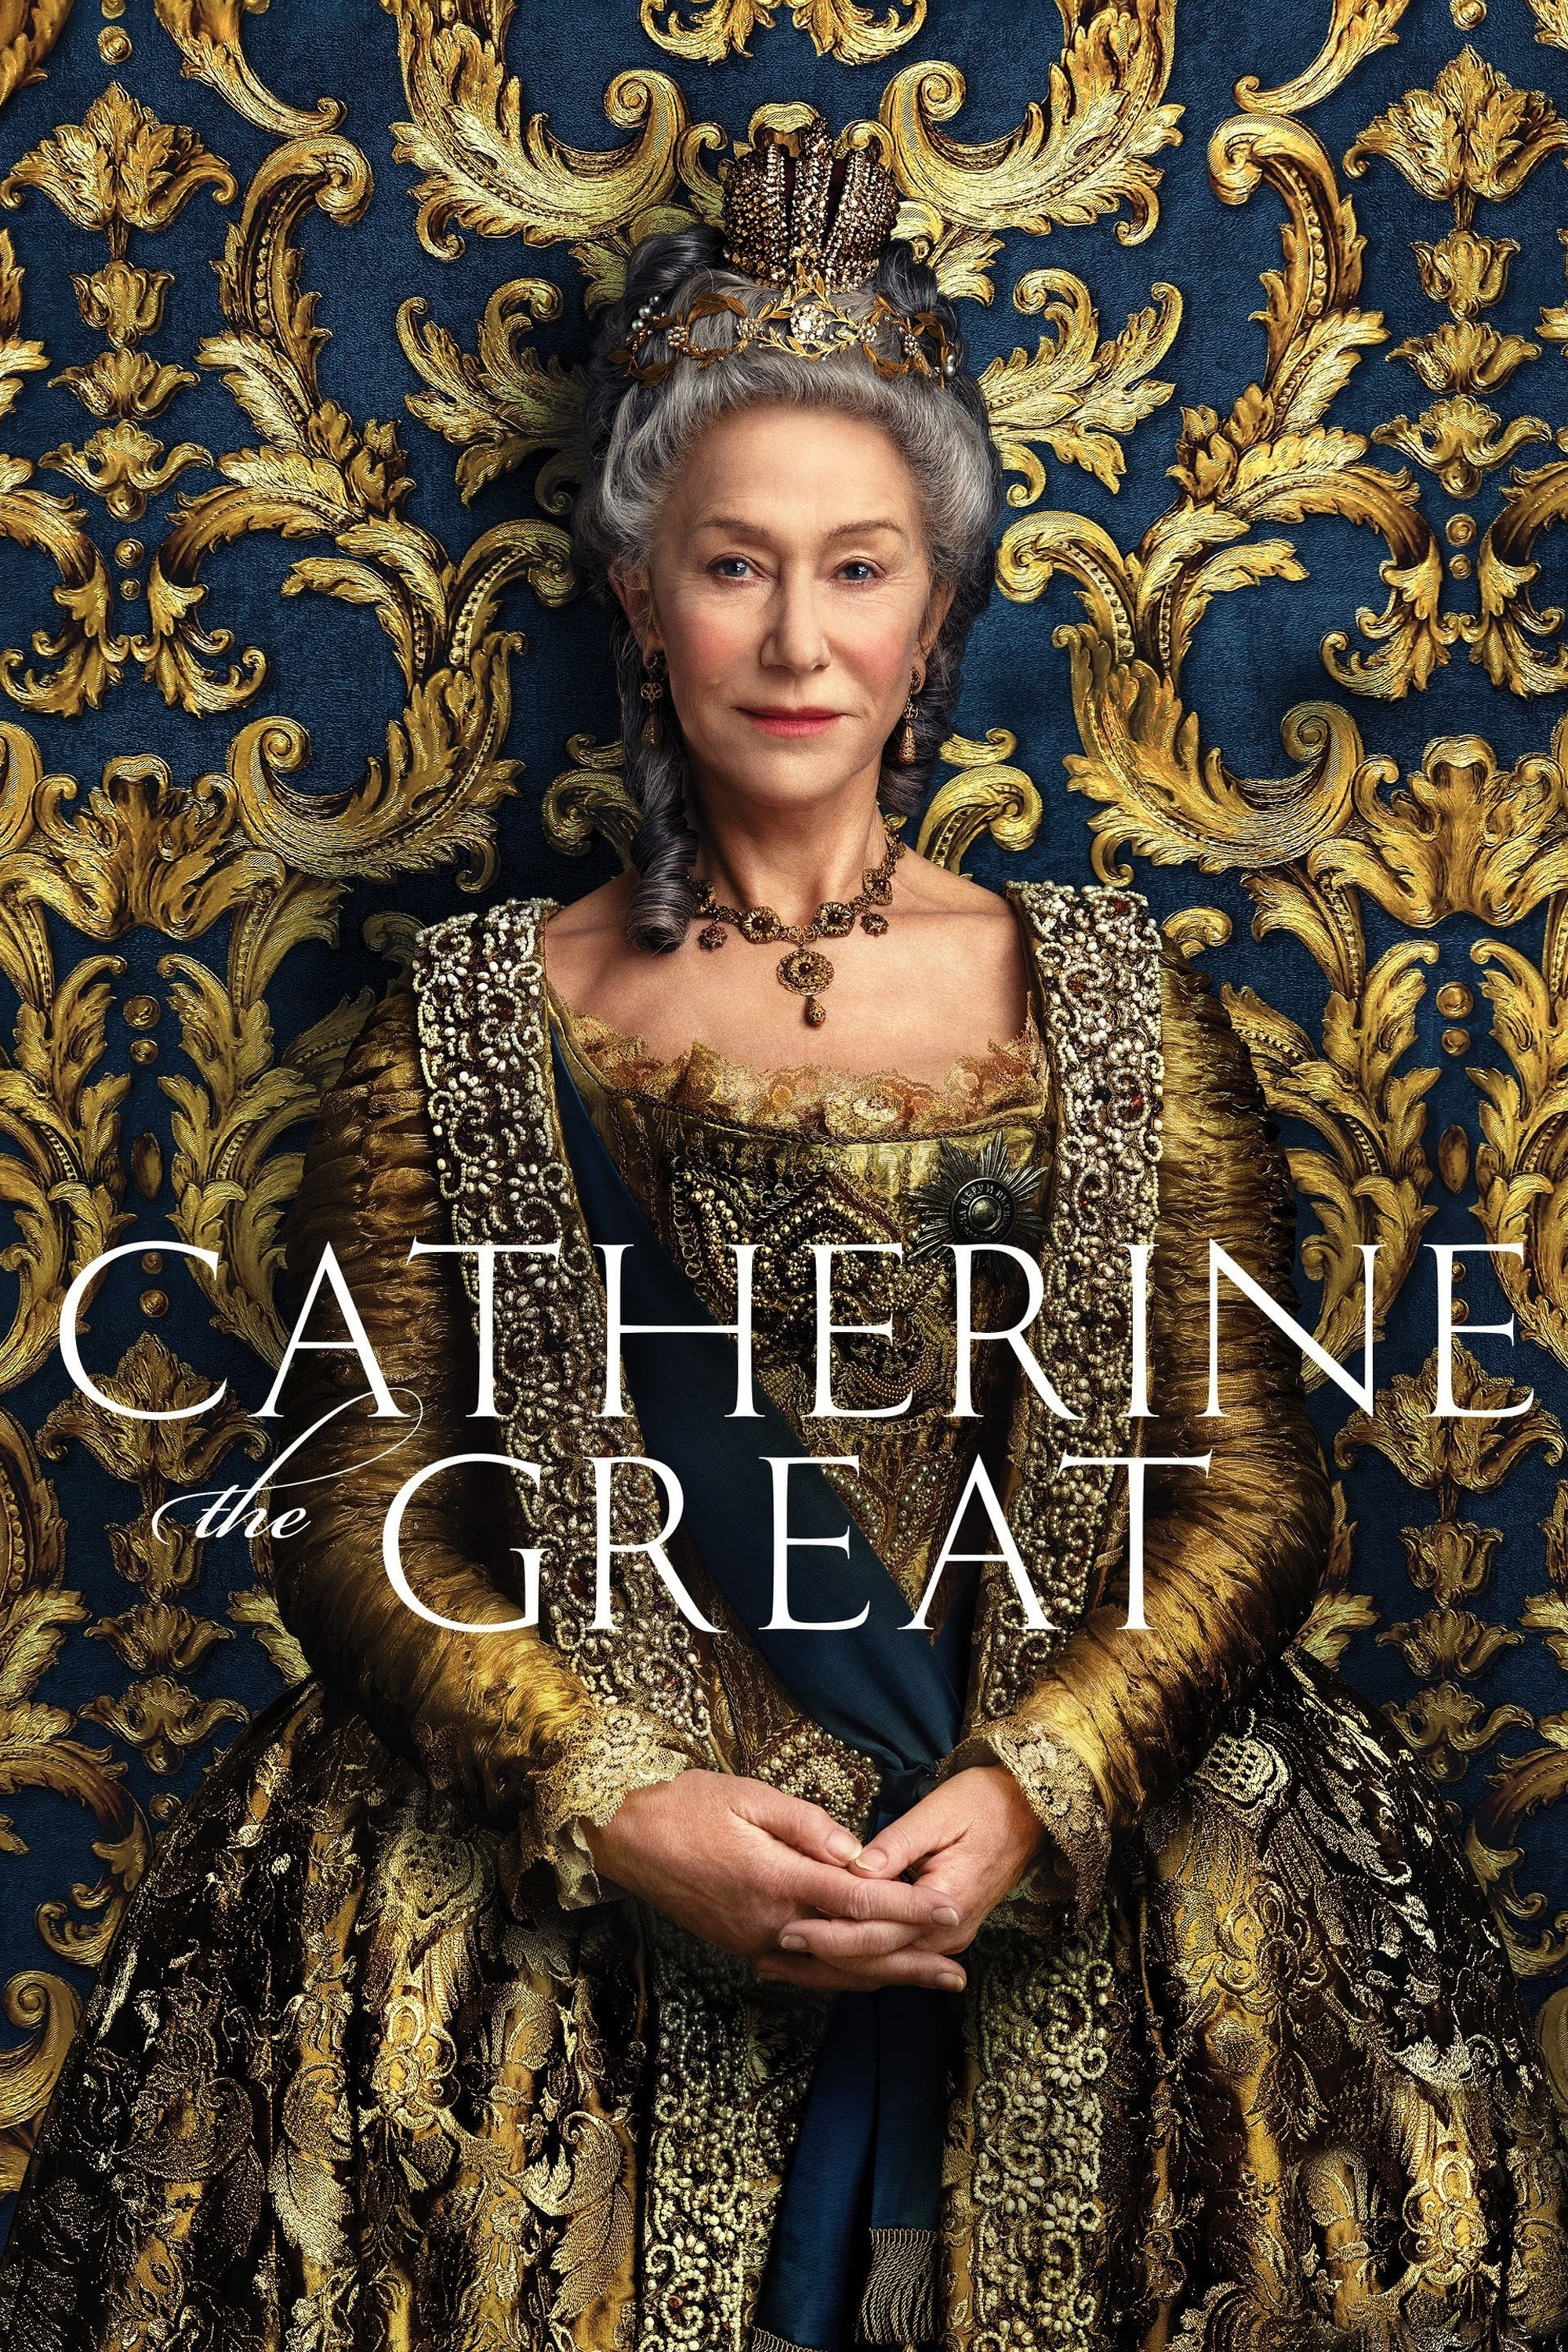 Catherine the Great Poster